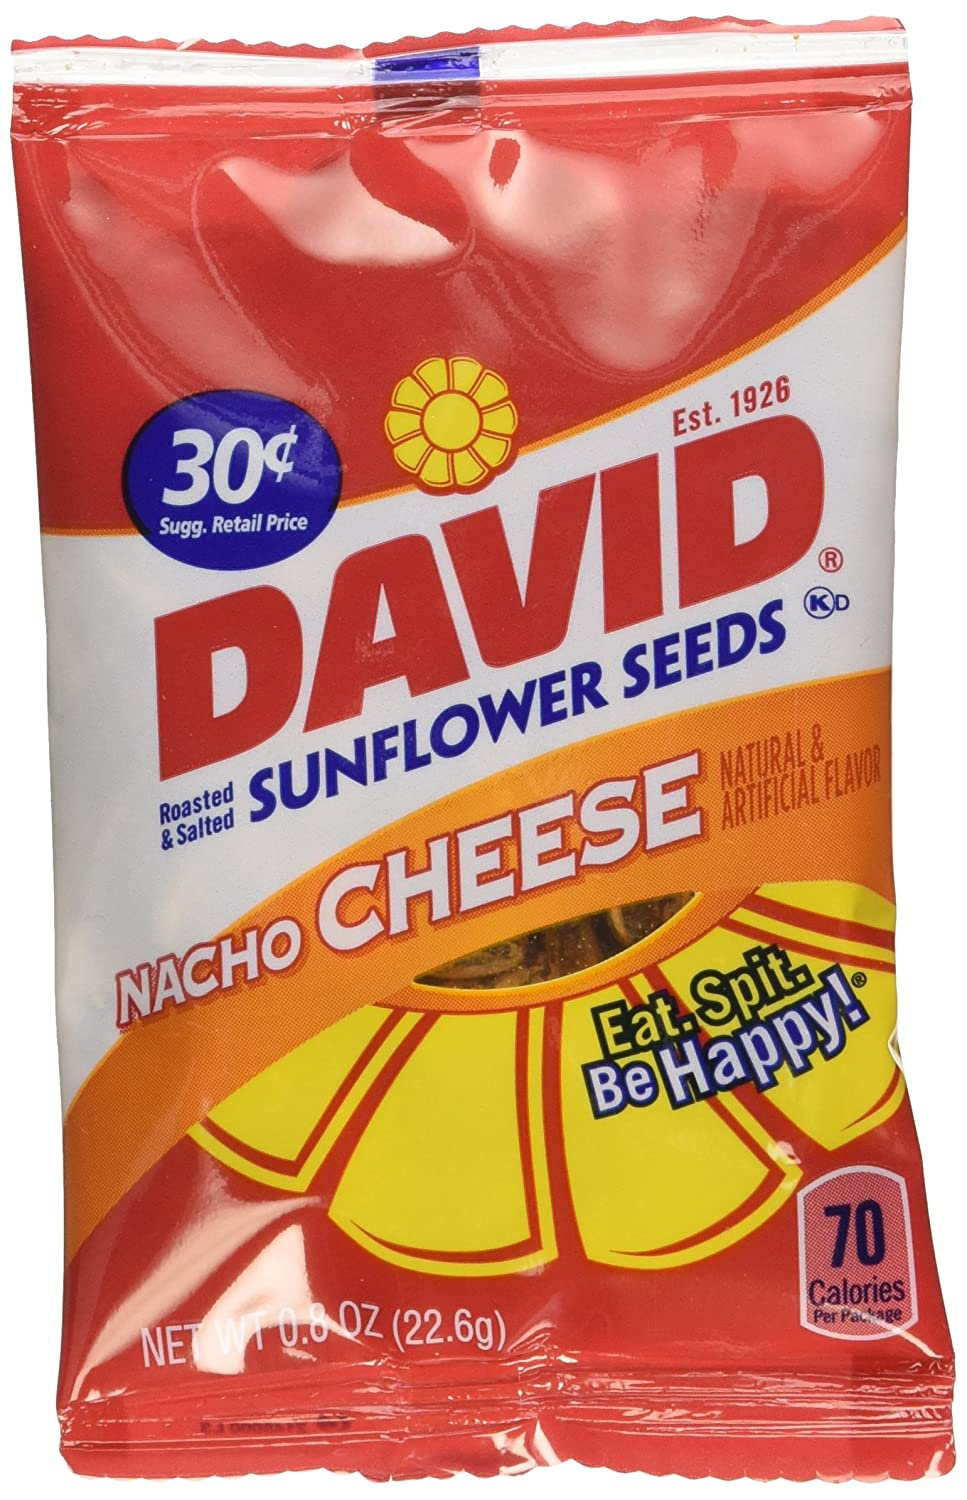 david sunflower seeds clipart - photo #2